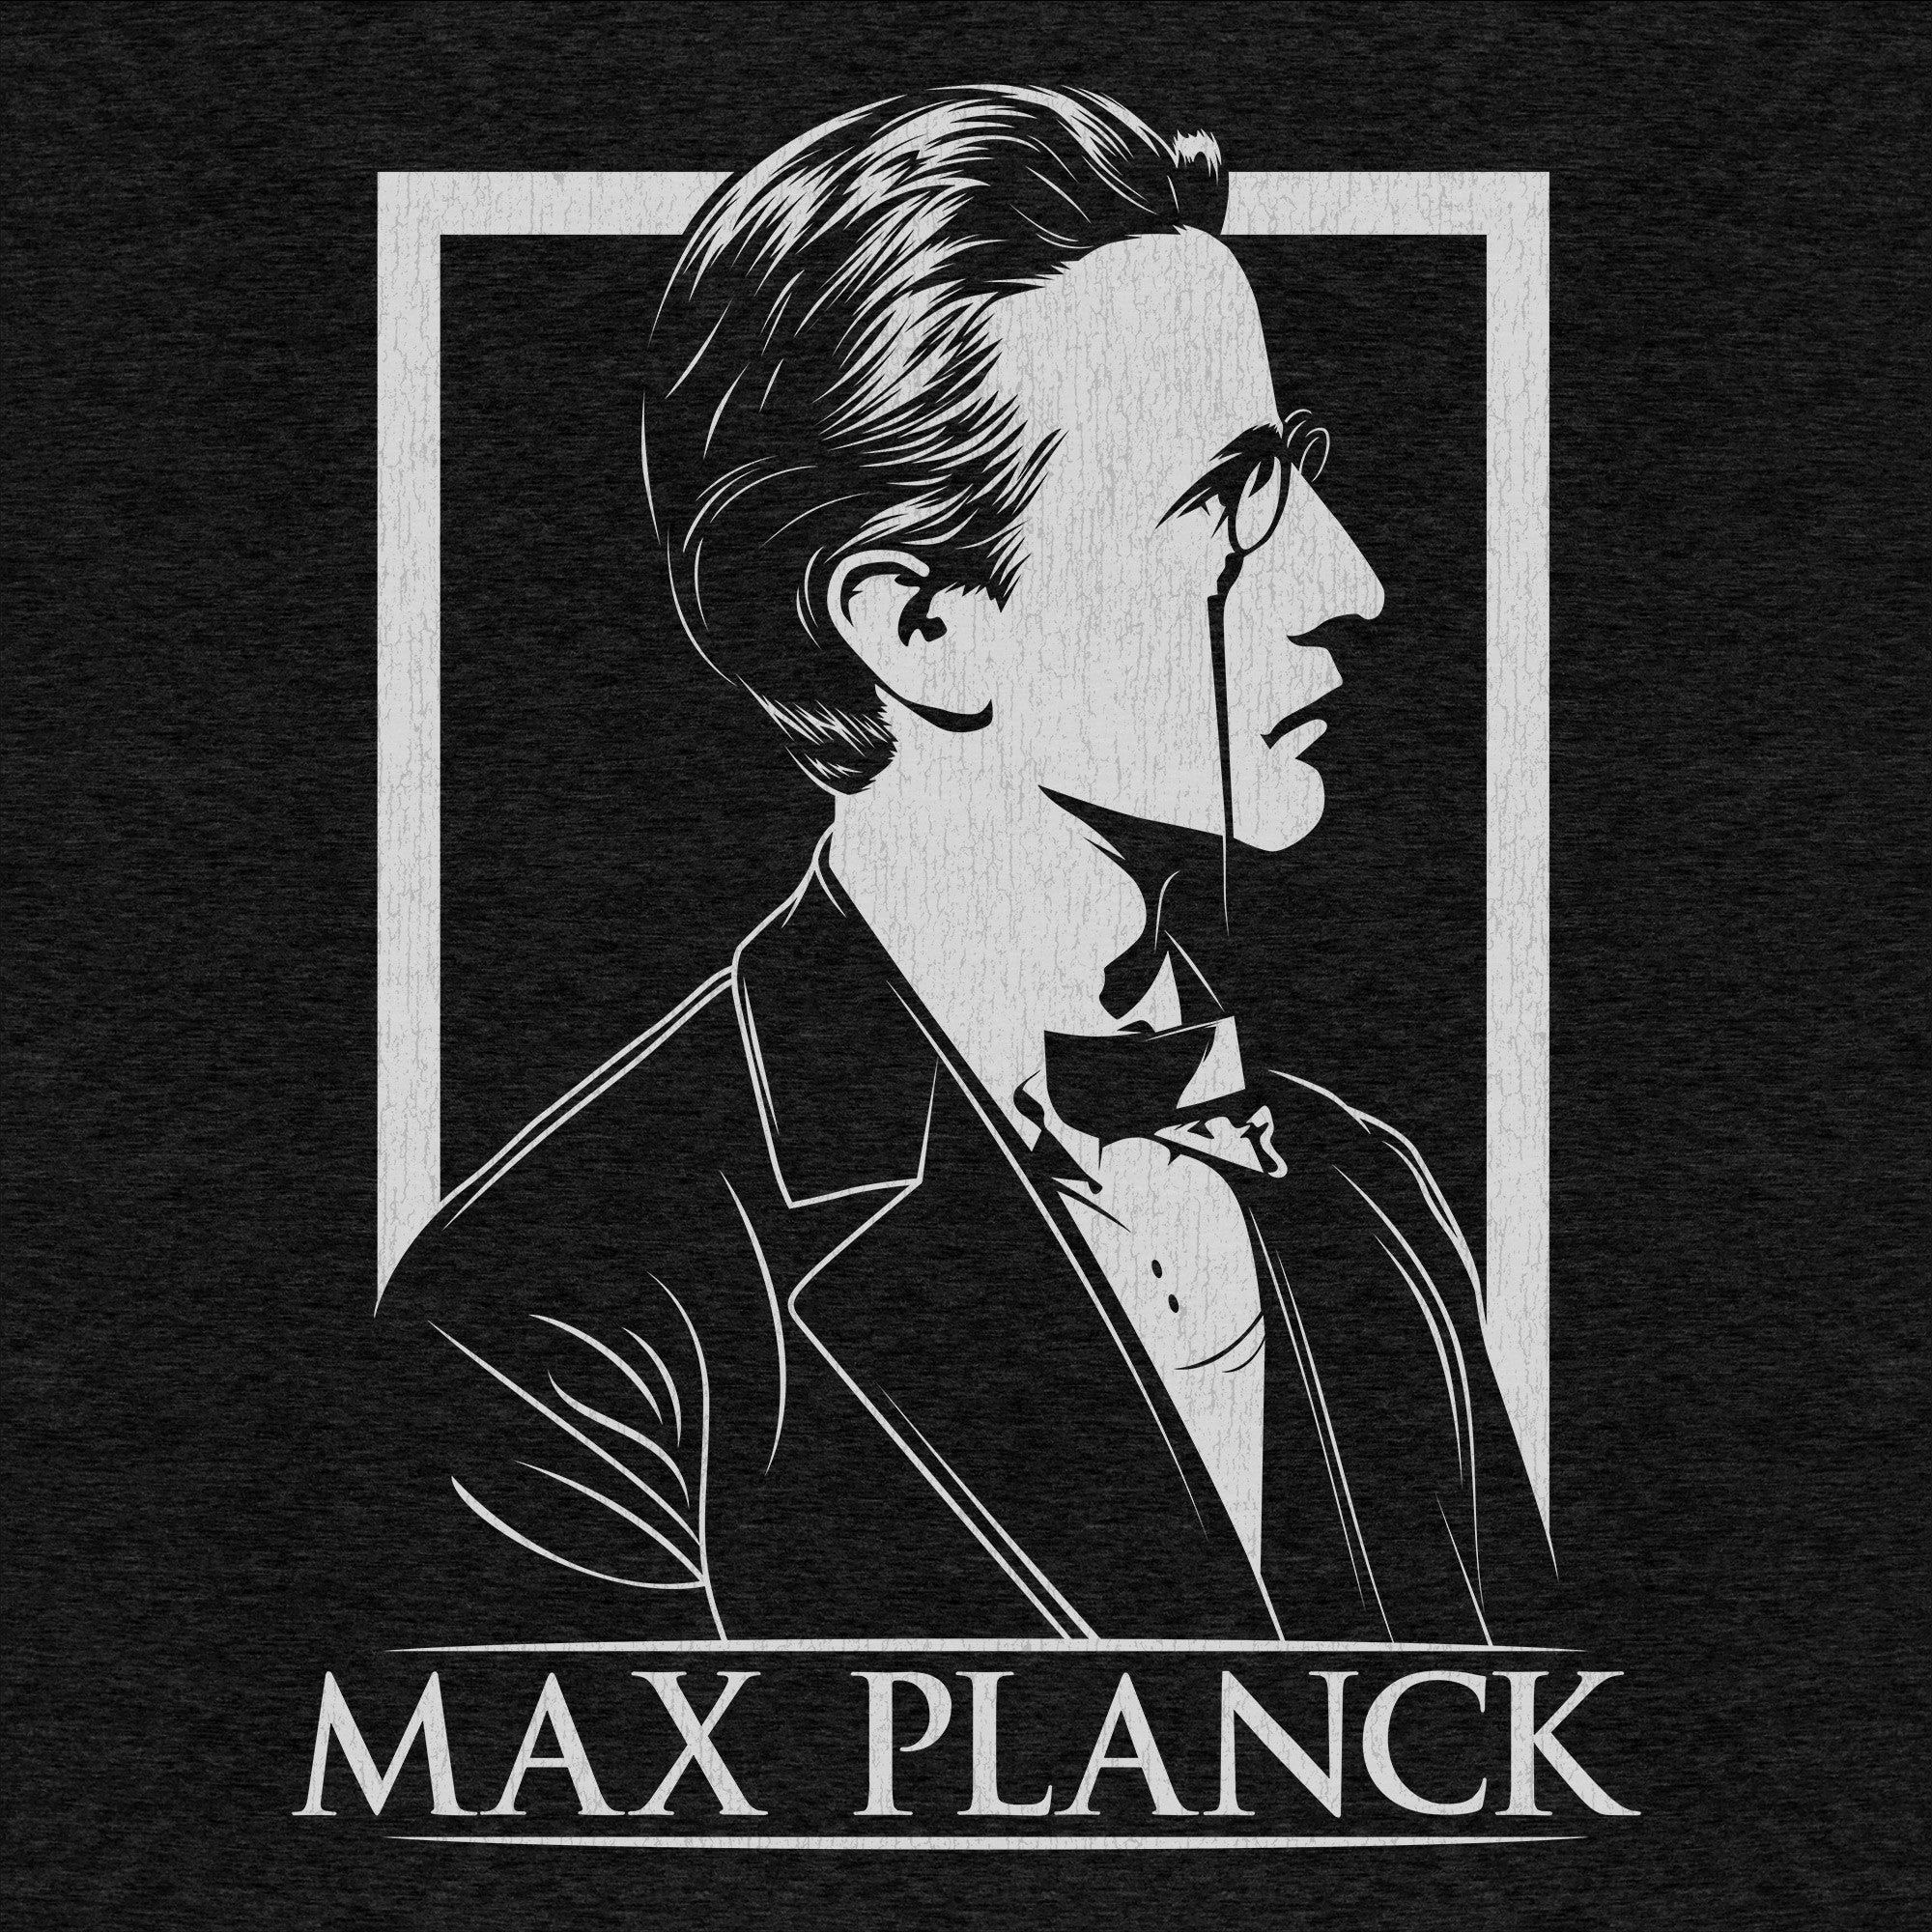 max planck Learn about working at max planck institute for informatics join linkedin today for free see who you know at max planck institute for informatics, leverage your professional network, and get hired.